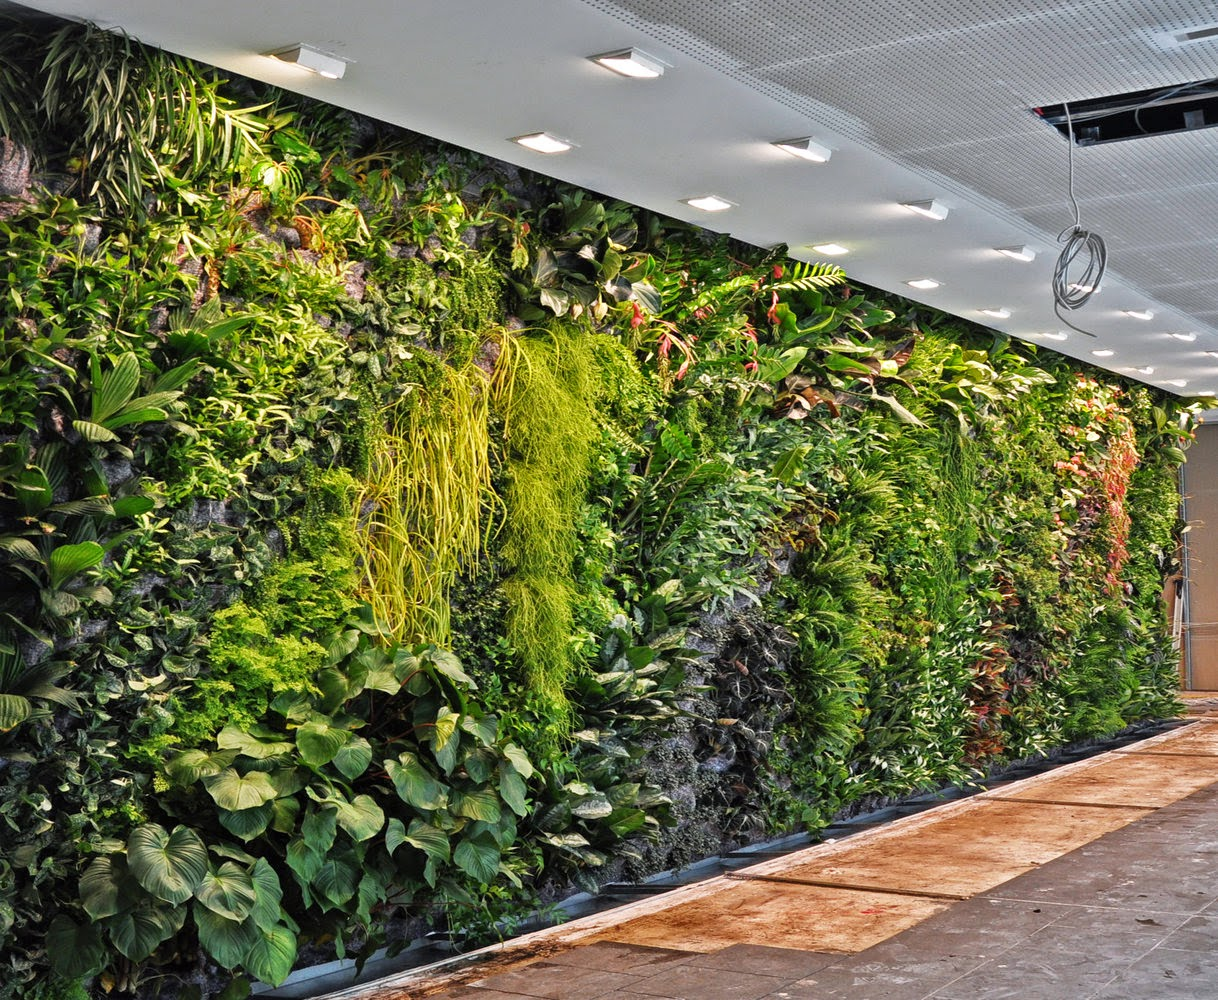 Kissing The Earth: Patrick Blanc And Urban Vertical Gardening